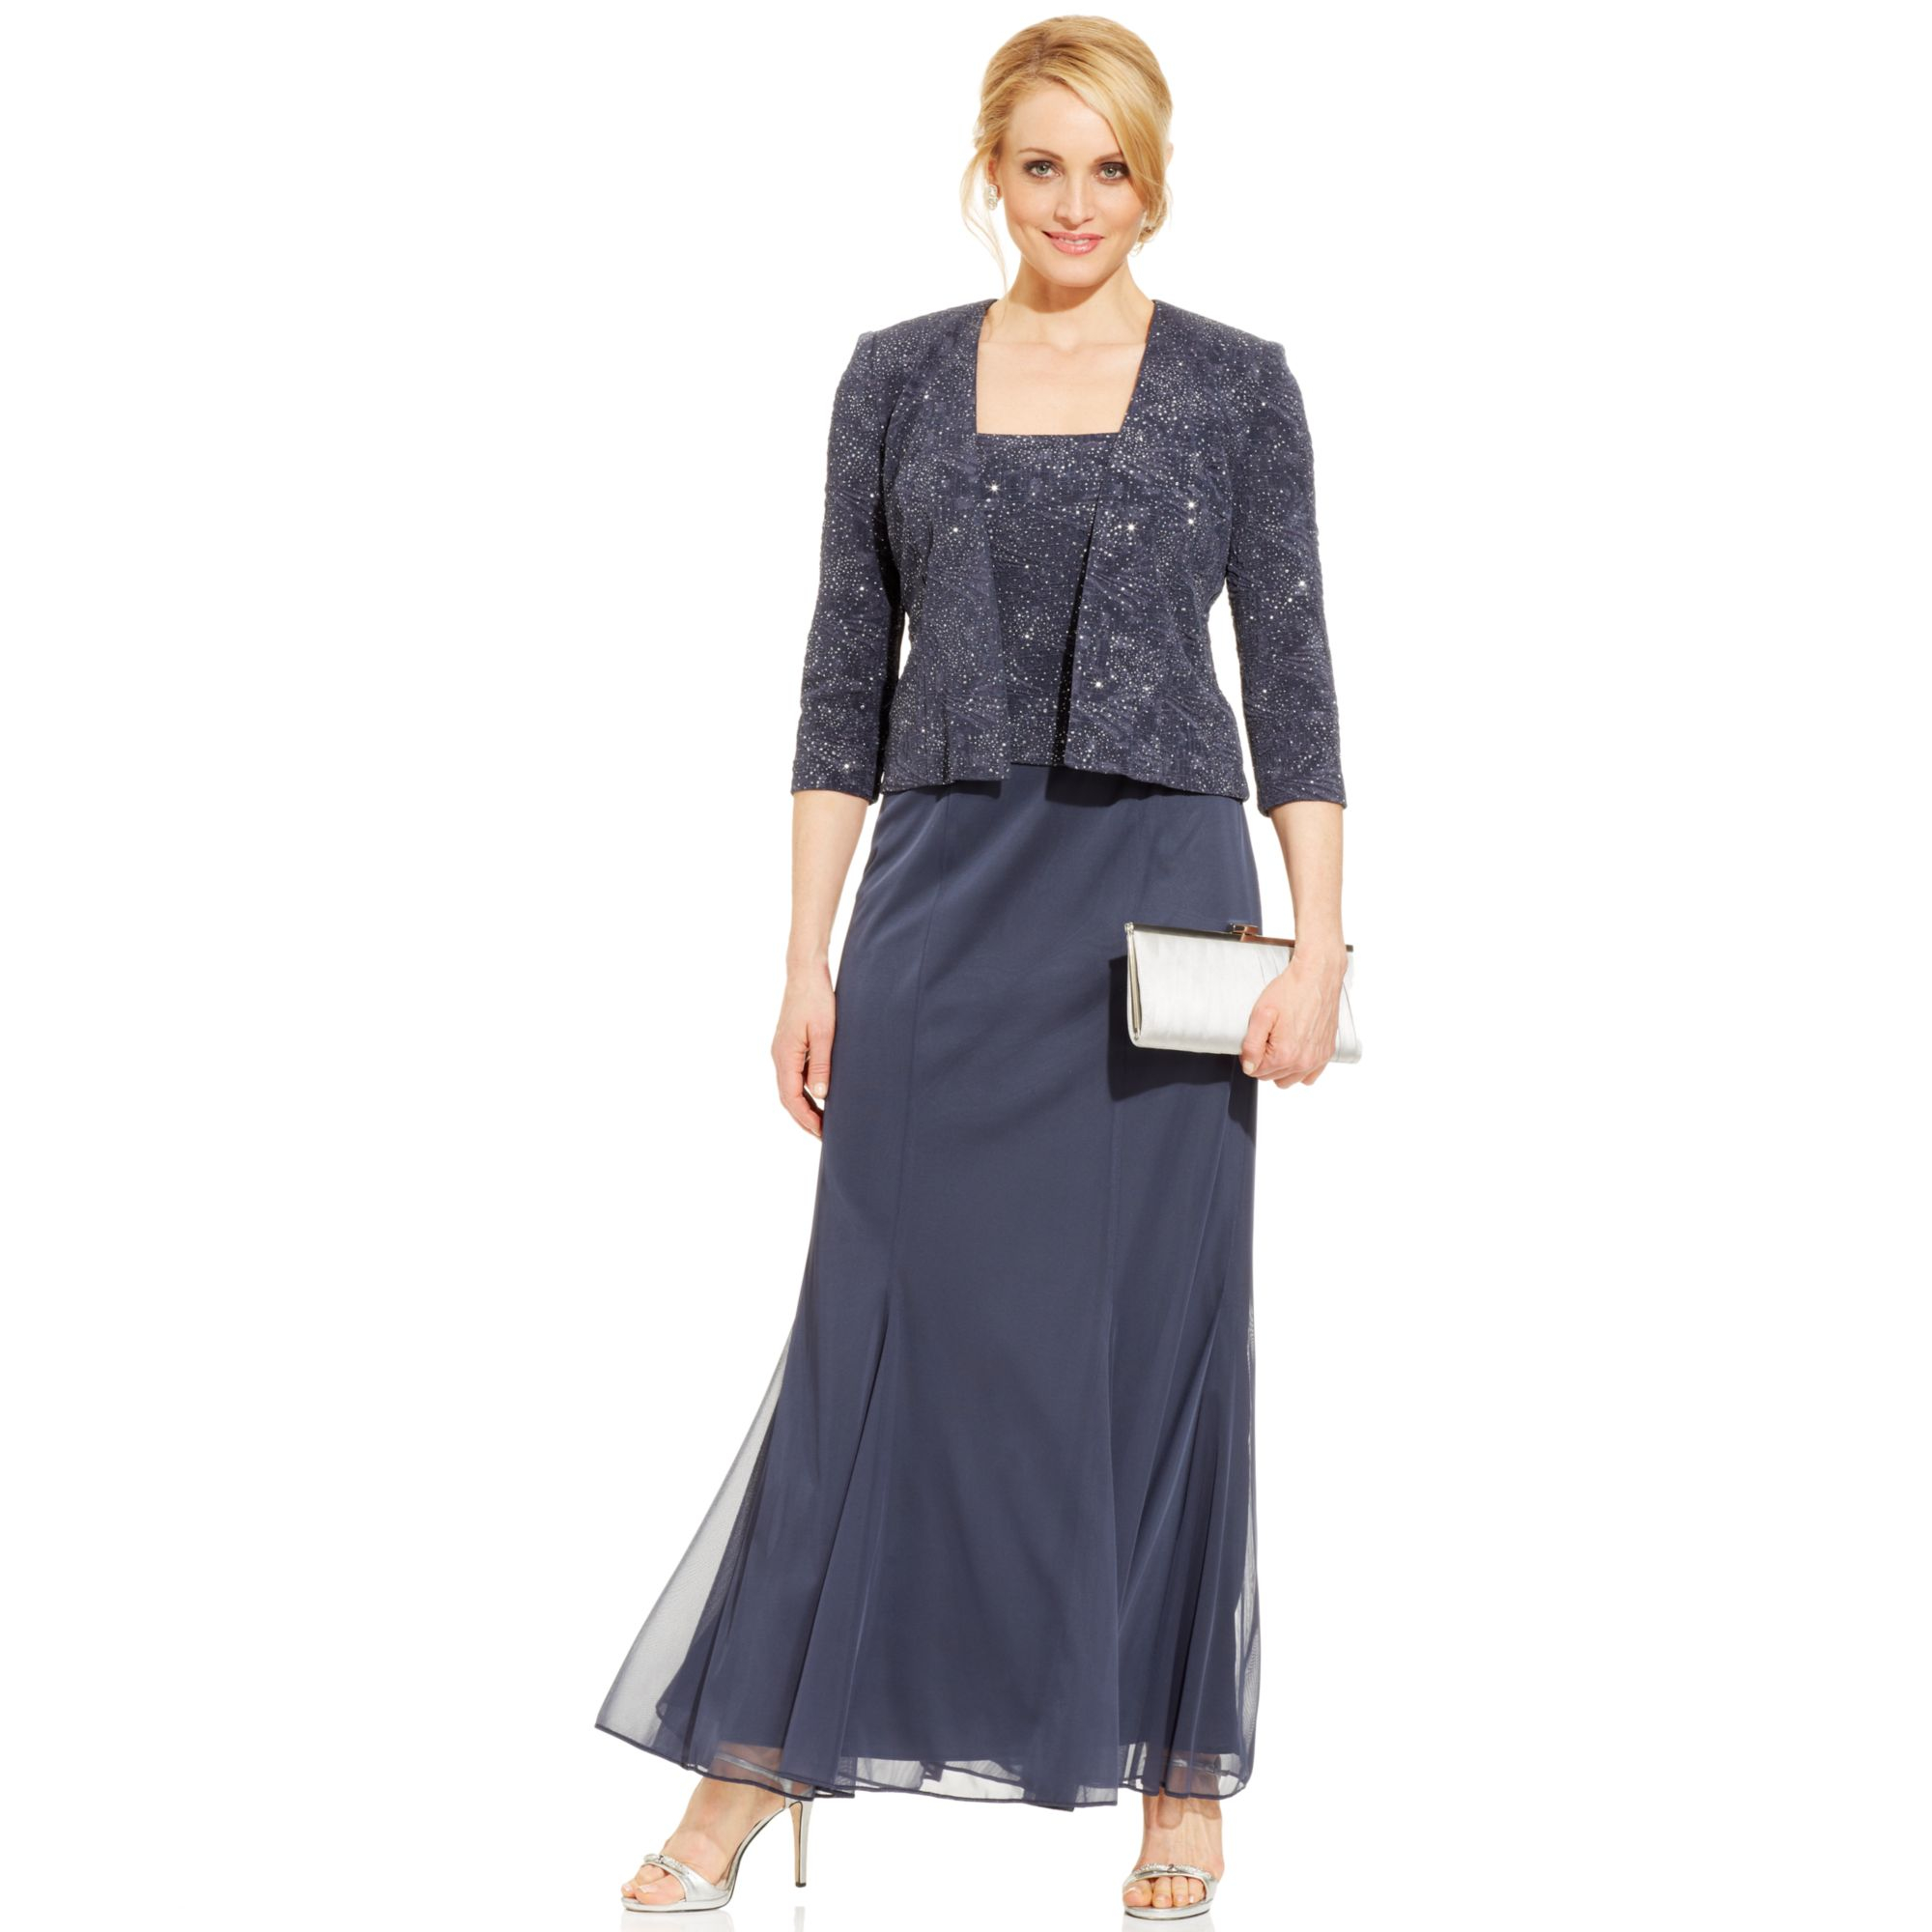 Alex Evenings Petite Sleeveless Glitter Gown And Jacket In